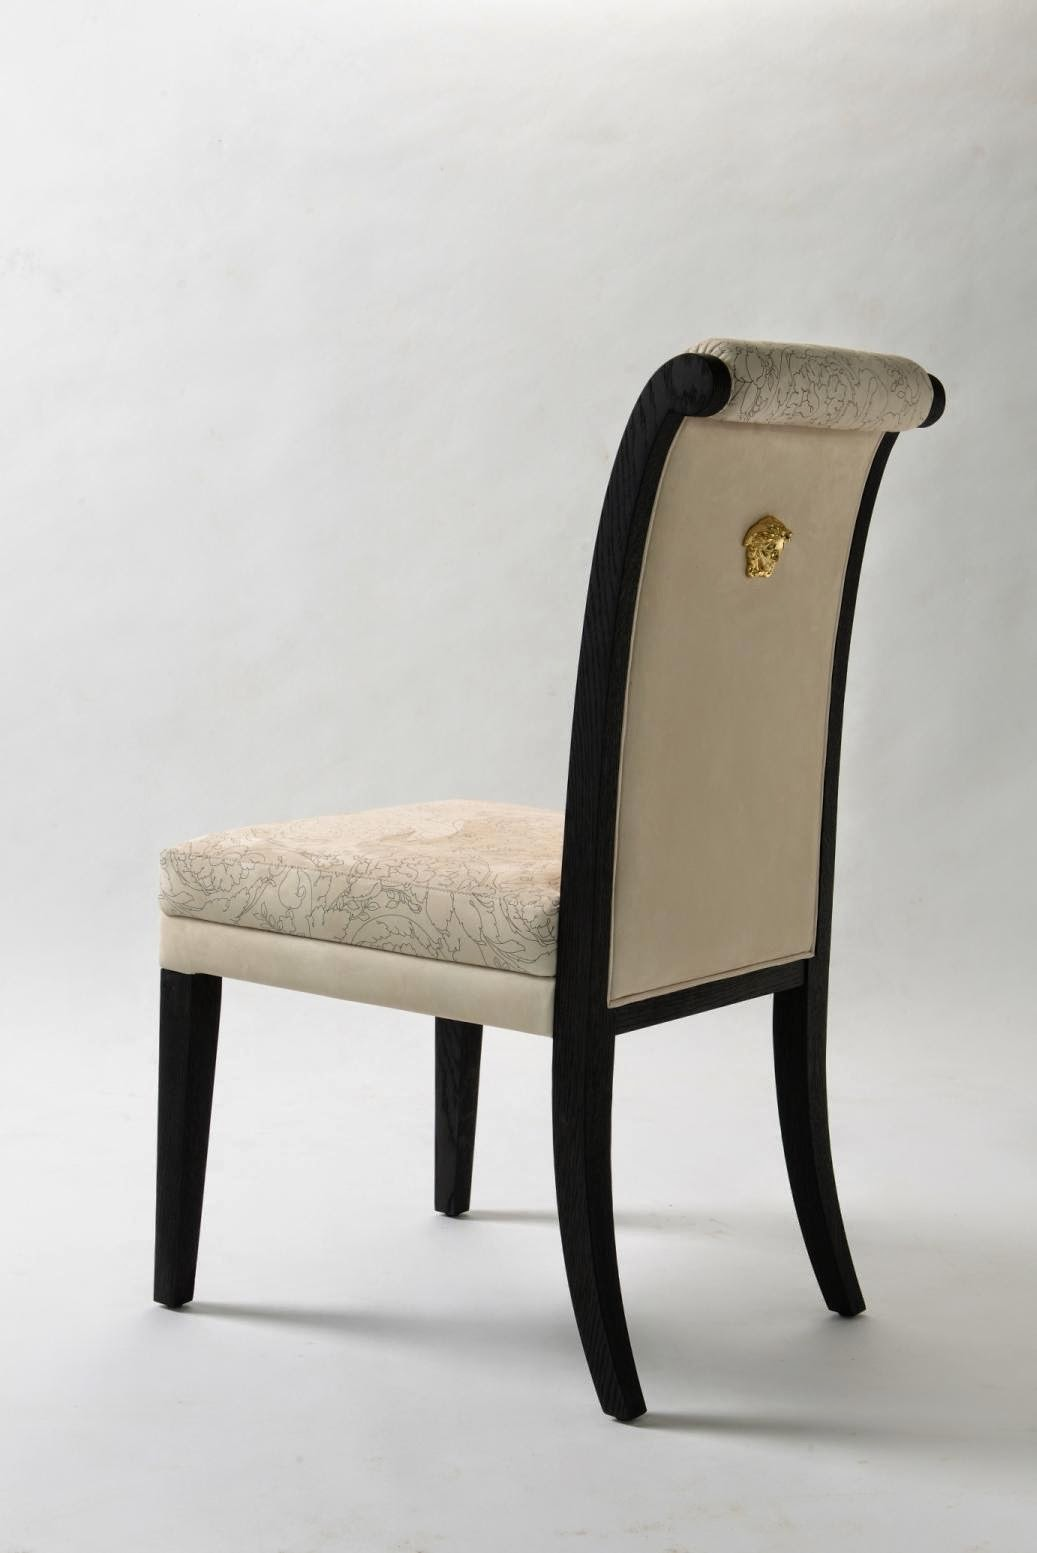 Palazzo Versace Dining Chair, Versace Dining Chair With Medusa